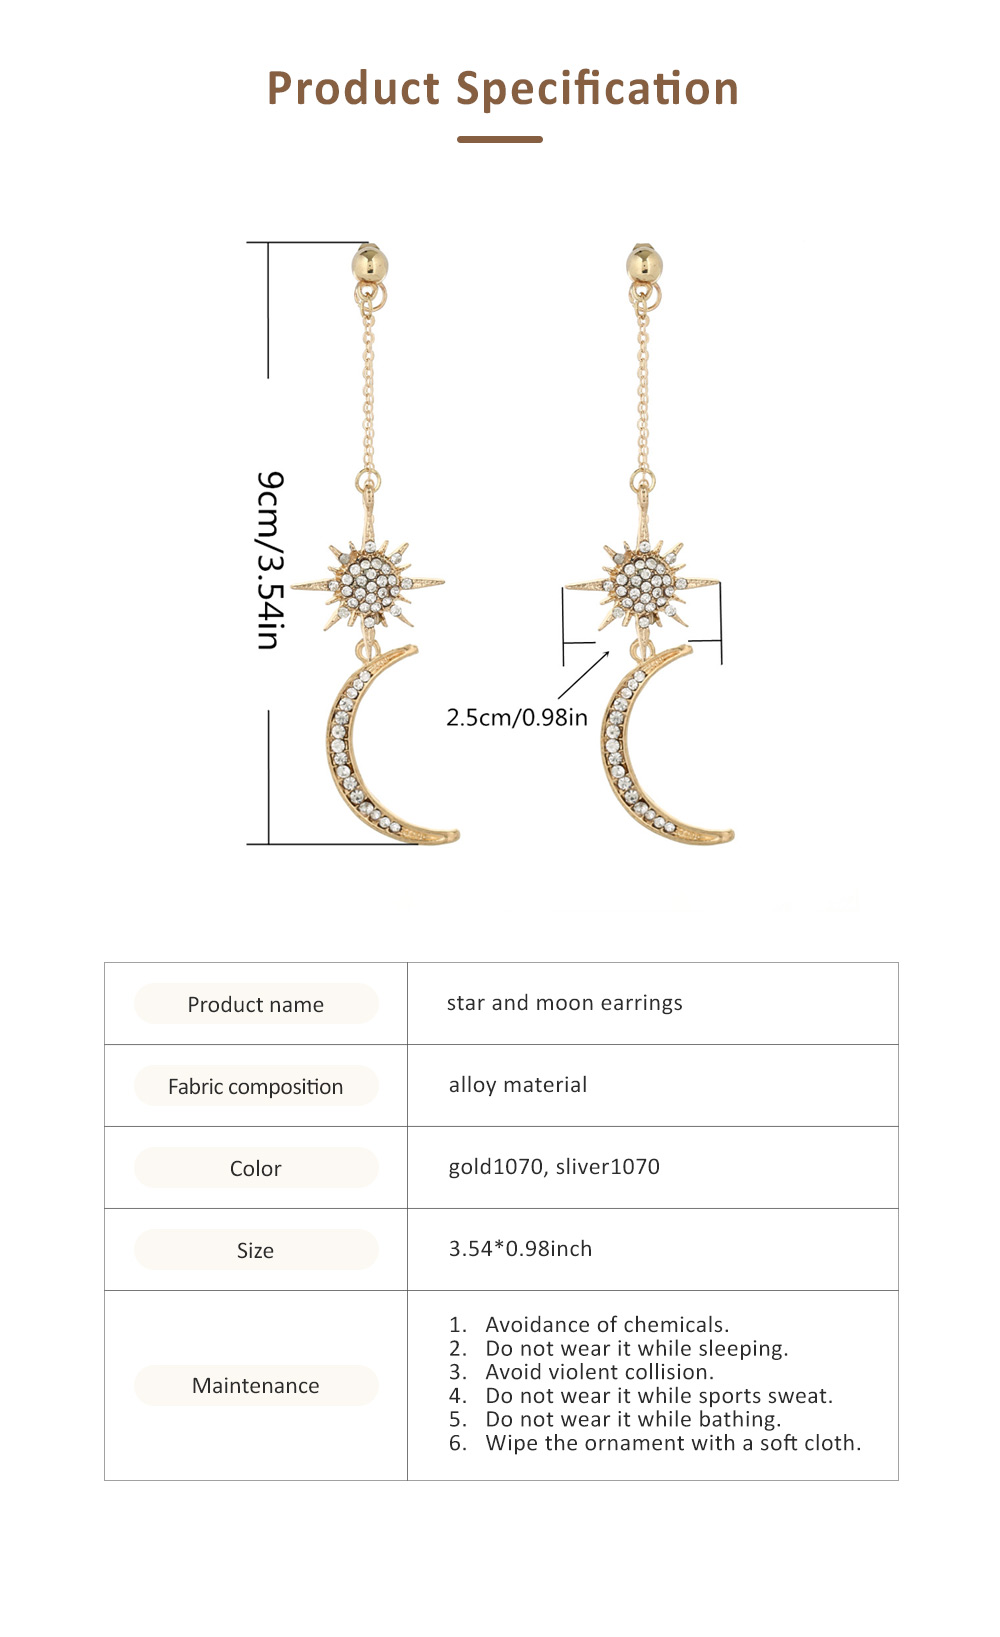 Star and Moon Earrings, with High-quality Alloy Material, Luxuriant Diamond and Tassel Pendant Earrings 6